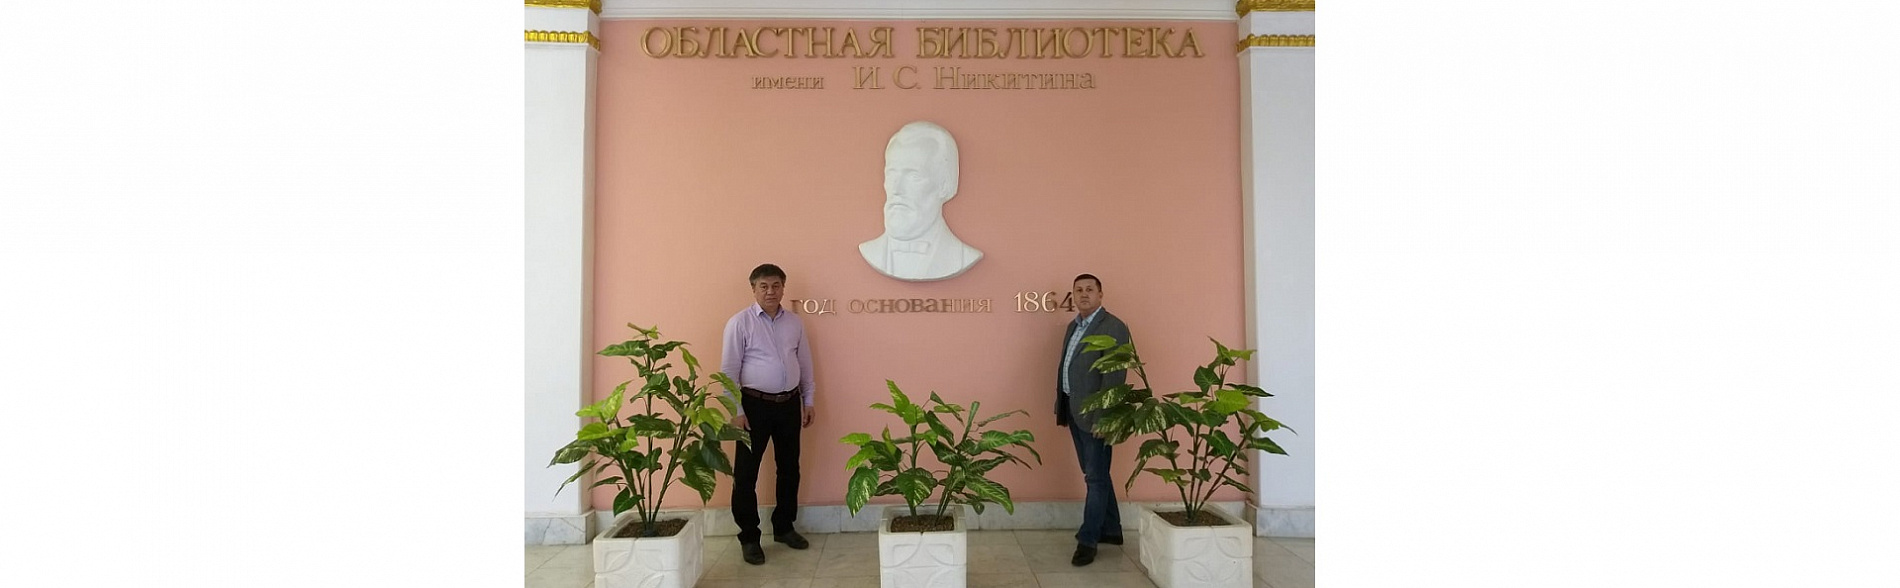 Research work of Atyrau scientists in the Russian archives